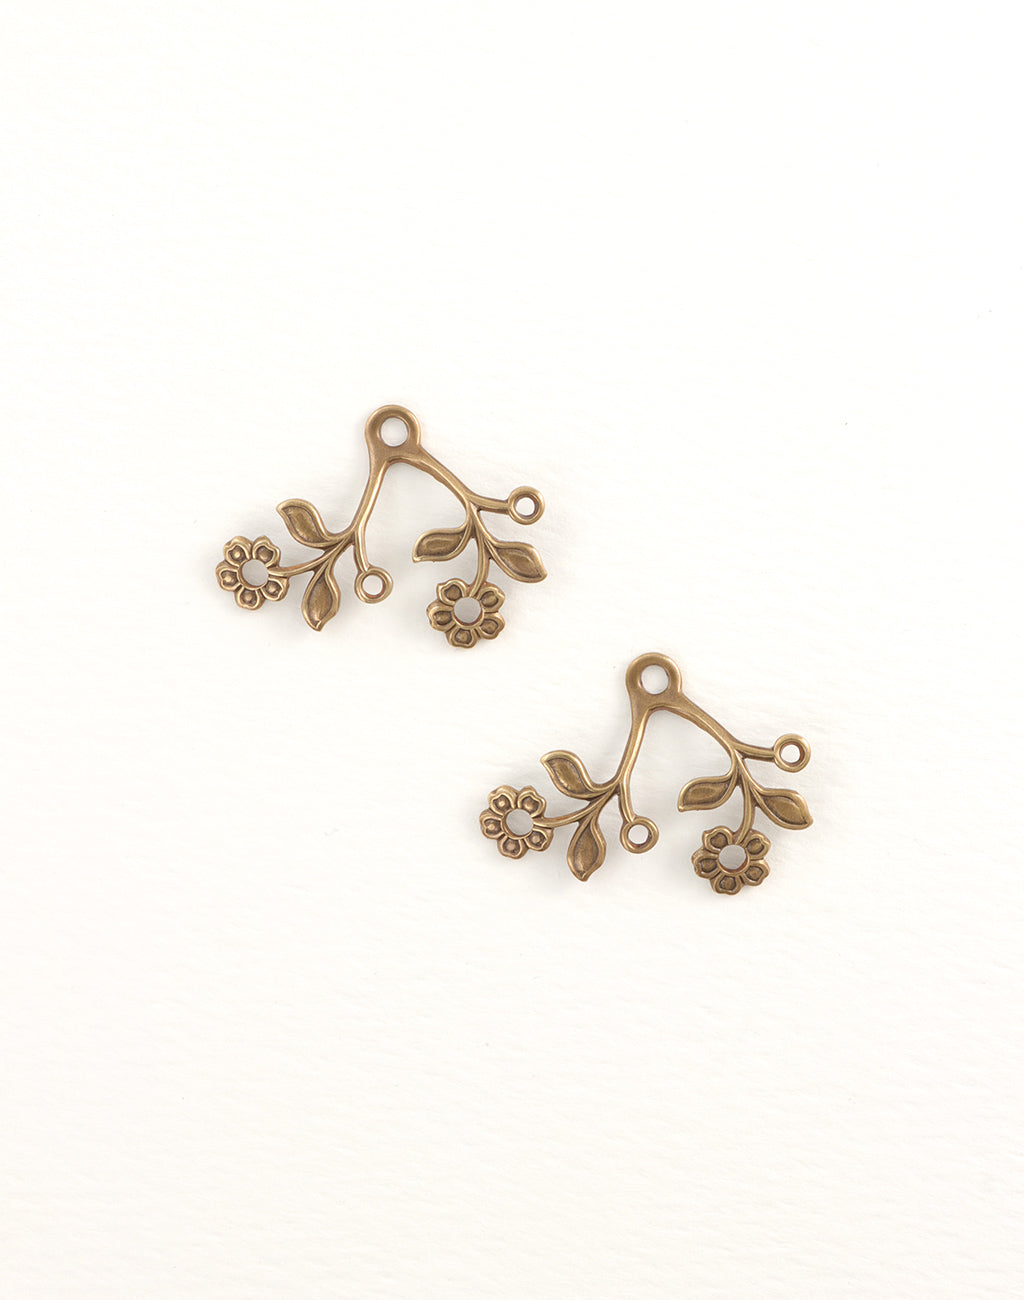 Blossoming Duet, 28x22mm, (2pcs)